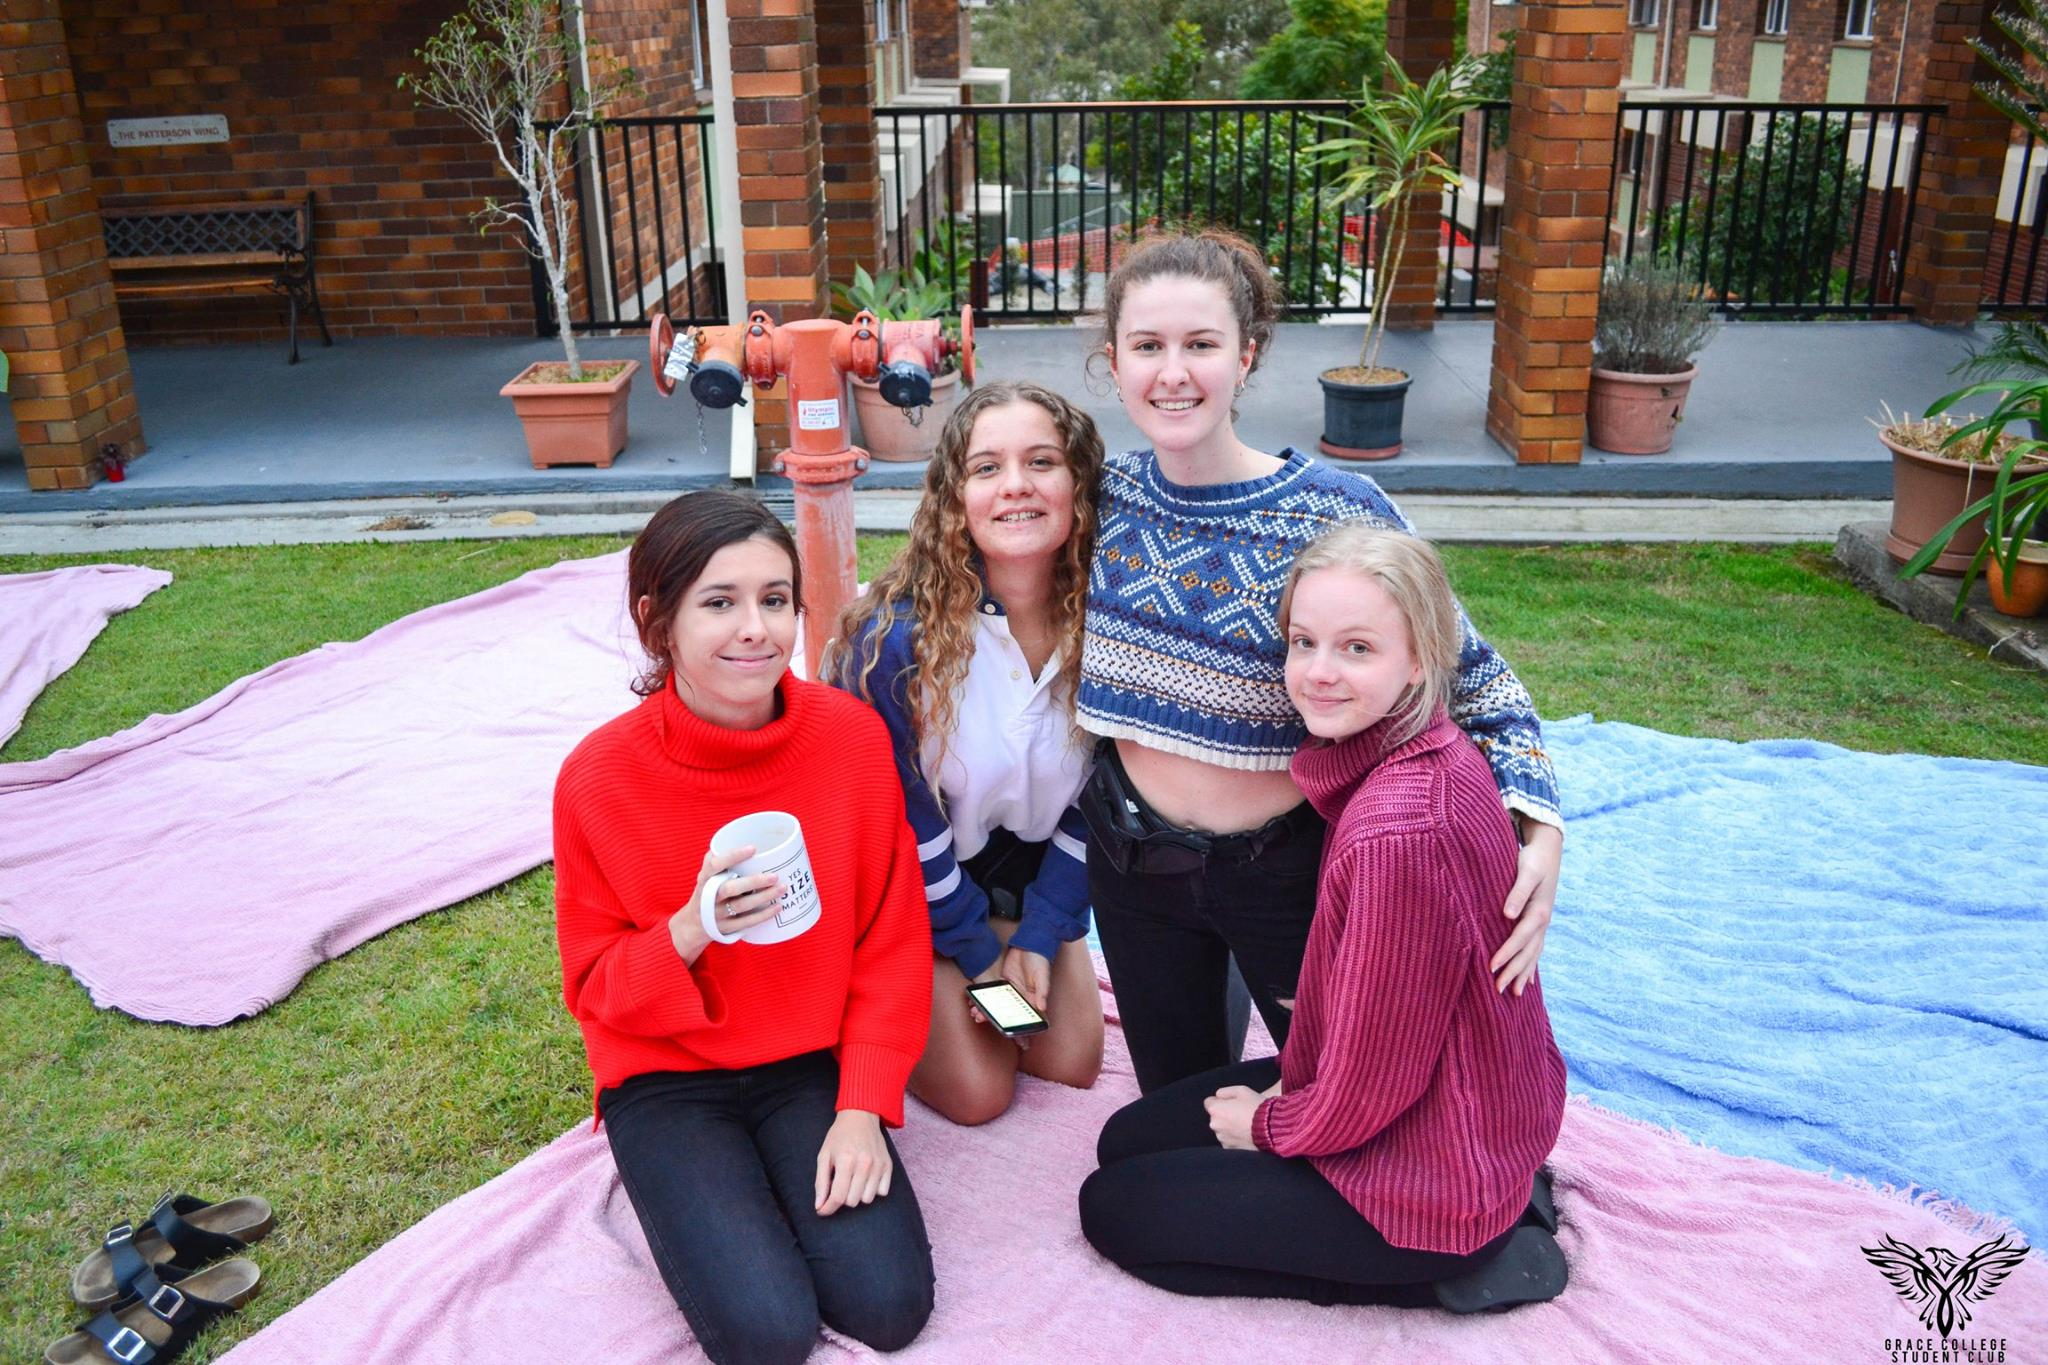 Group of residents on picnic blankets in the central courtyard